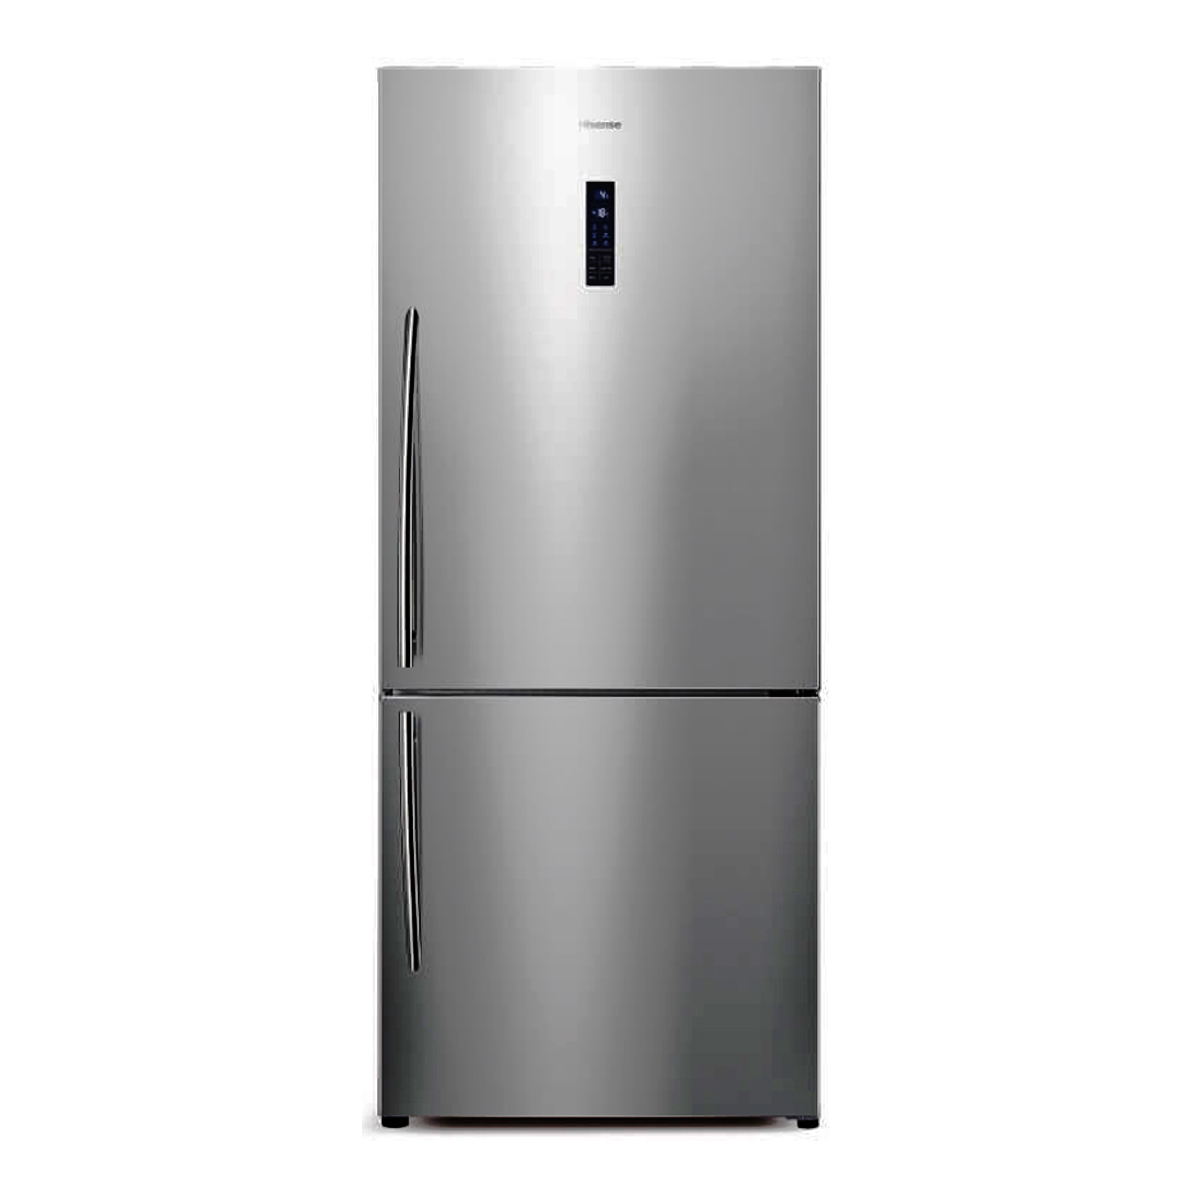 Online Fridge Bottom Mount Fridges Home Clearance Appliances Online